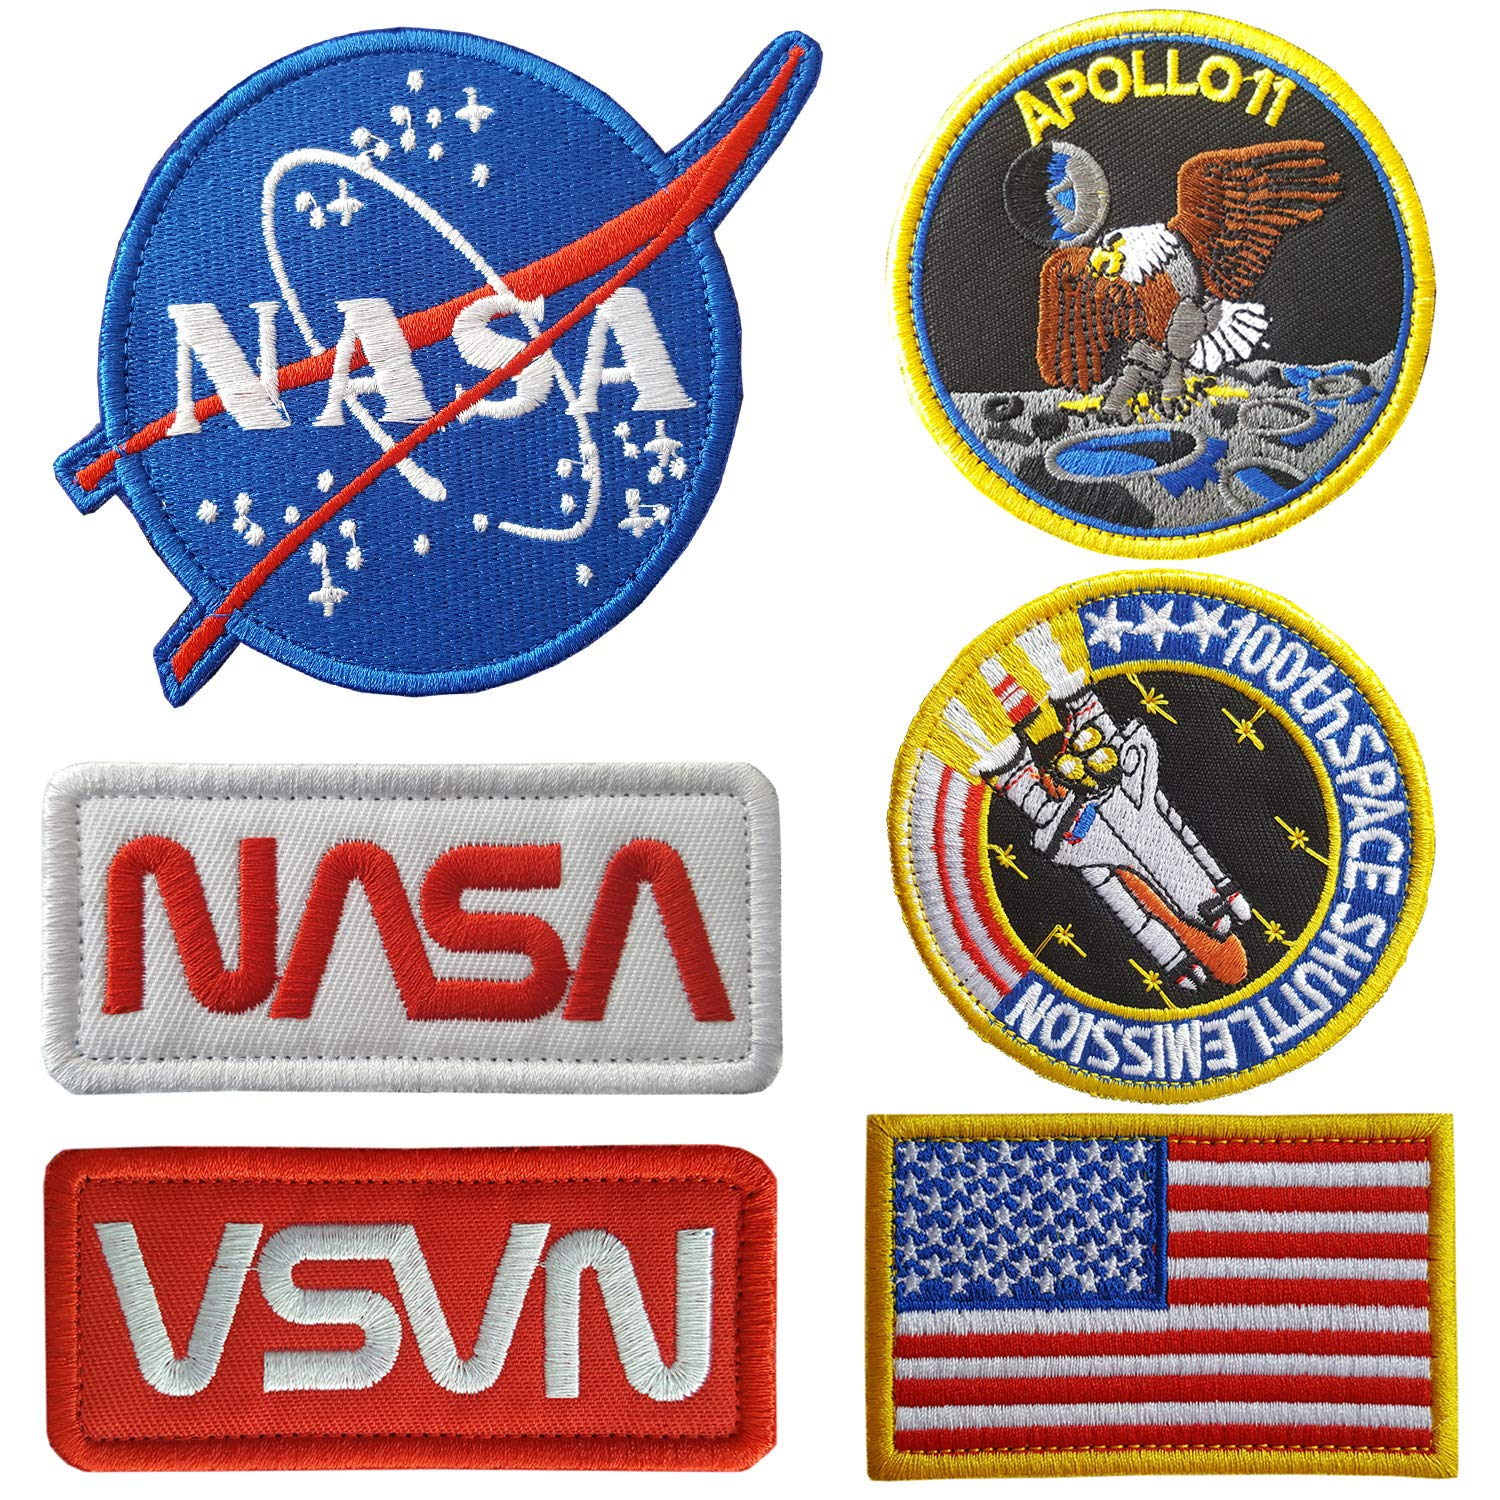 Lightbird NASA Patches 6 Pieces,Embroidered Iron On/Sew On Space Patches,US Flag Patch (Iron on/Heat Transfer Backing) by Lightbird